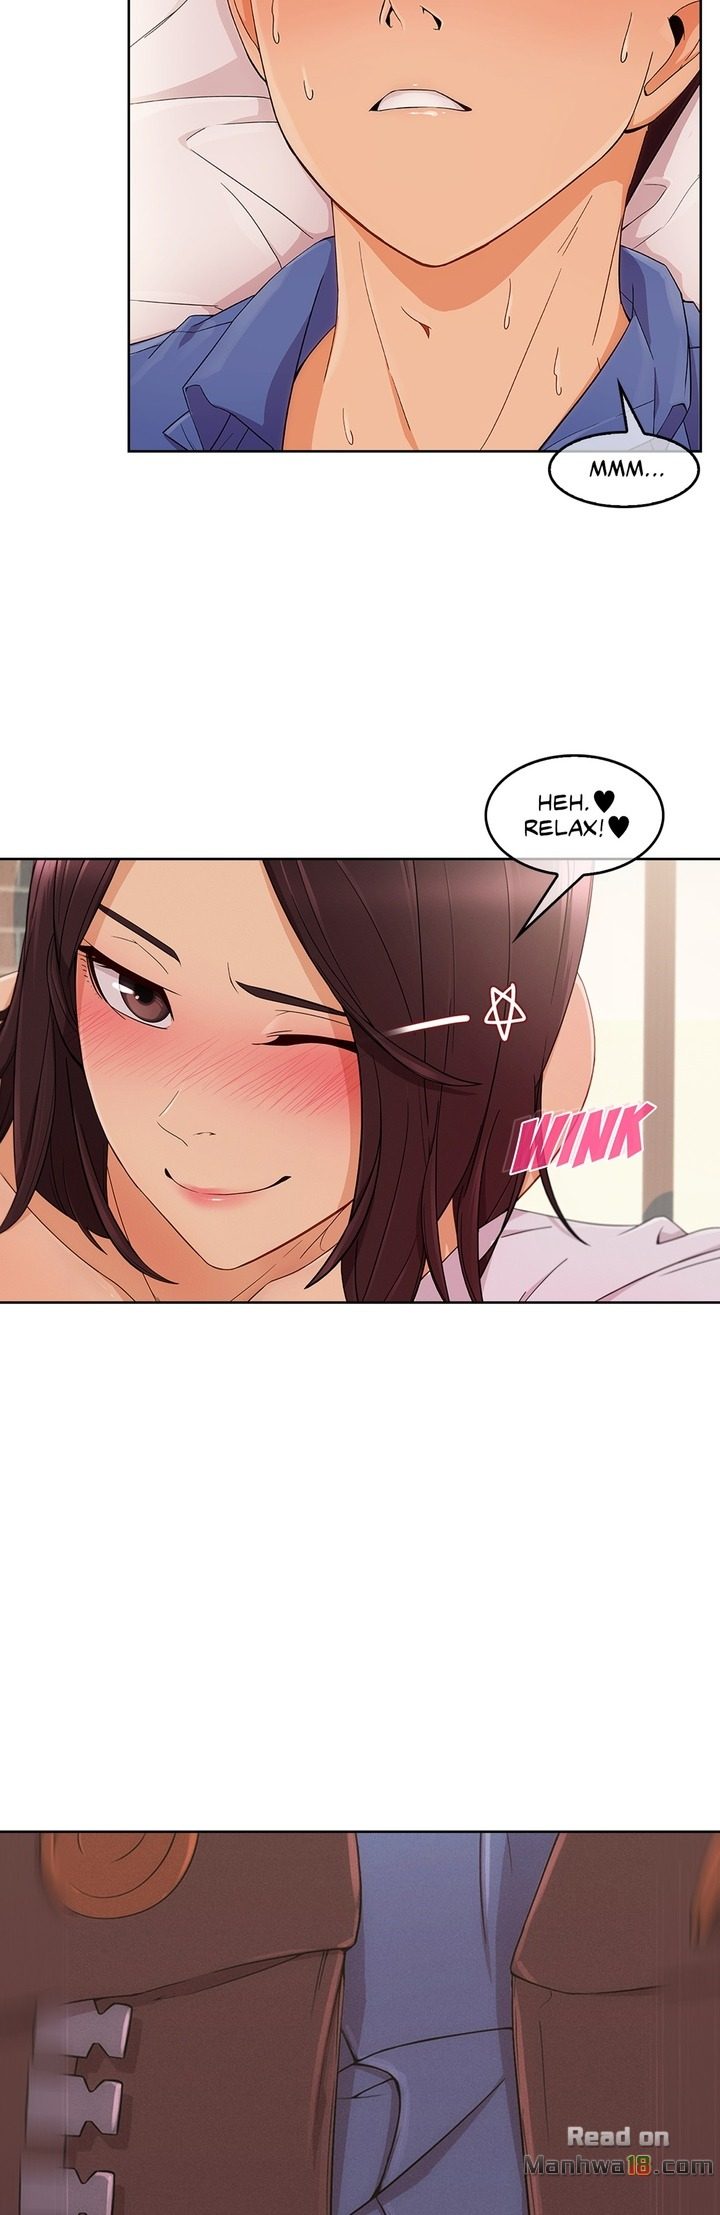 Sweet but Psycho Chapter 5 - Manhwa18.com